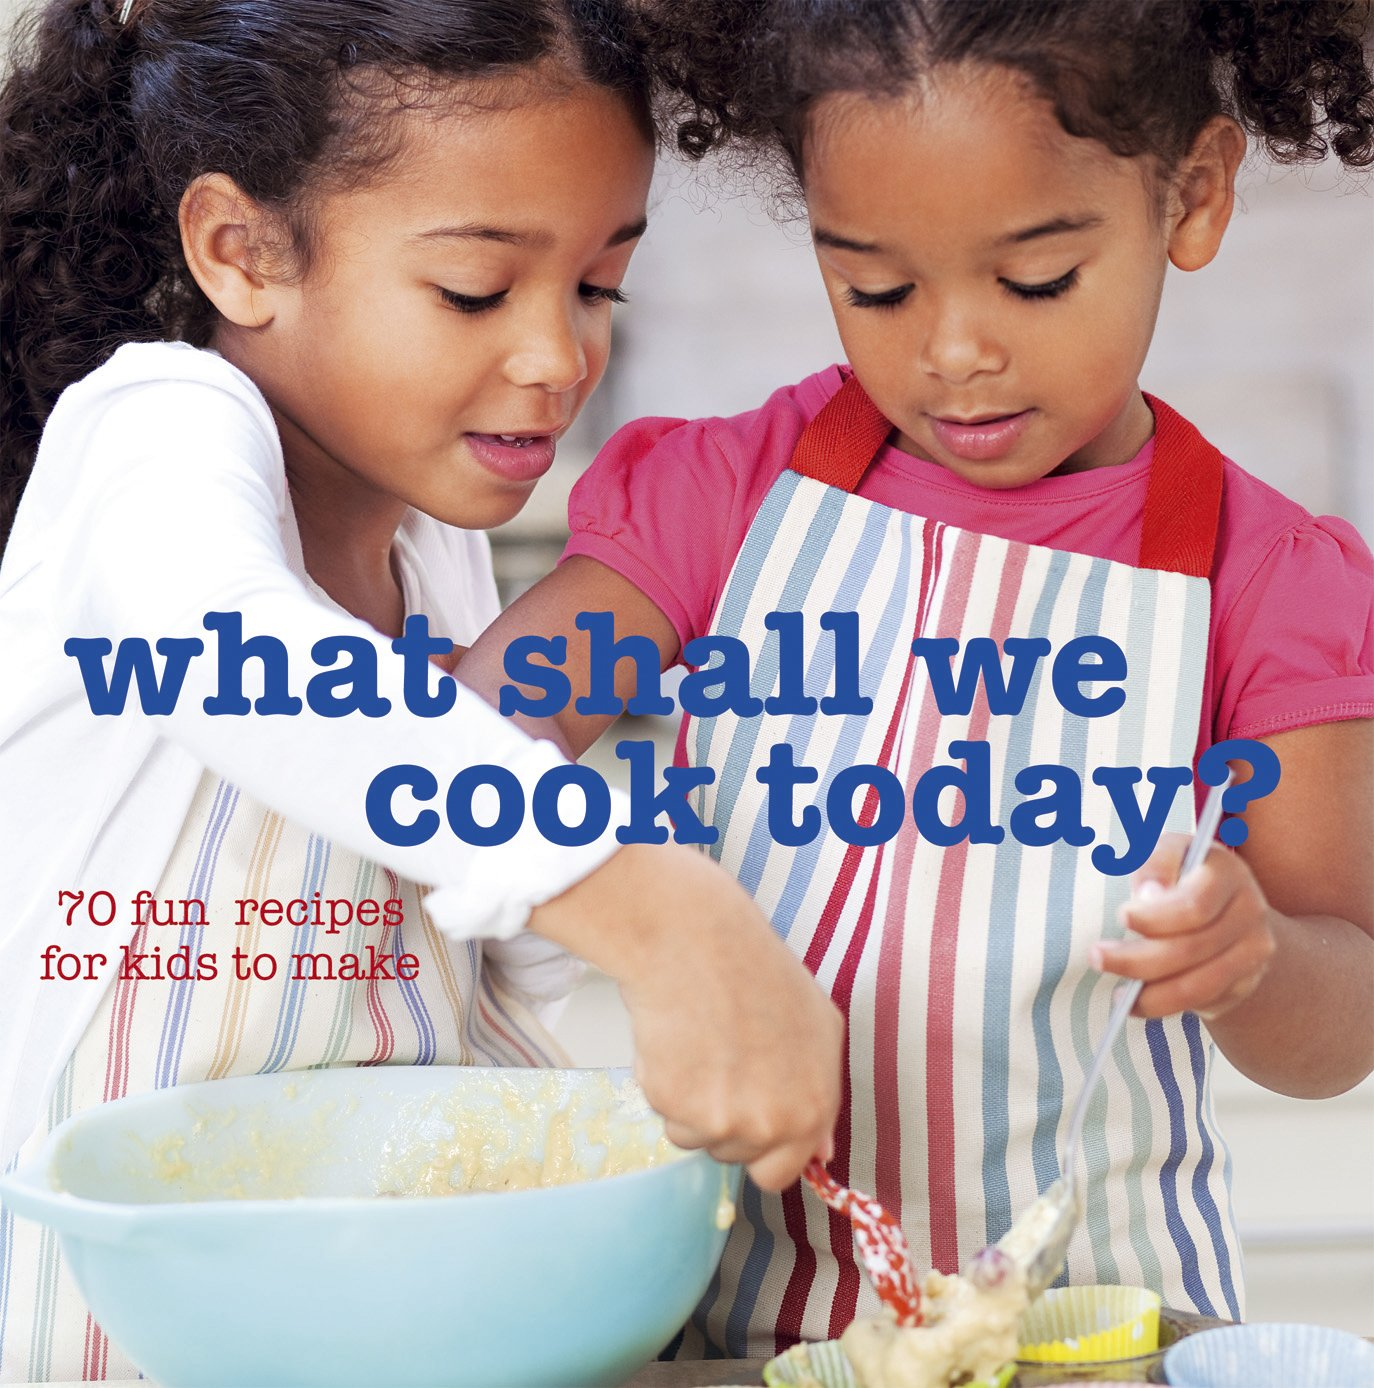 What Shall We Cook Today?: More Than 70 Fun Recipes for Kids